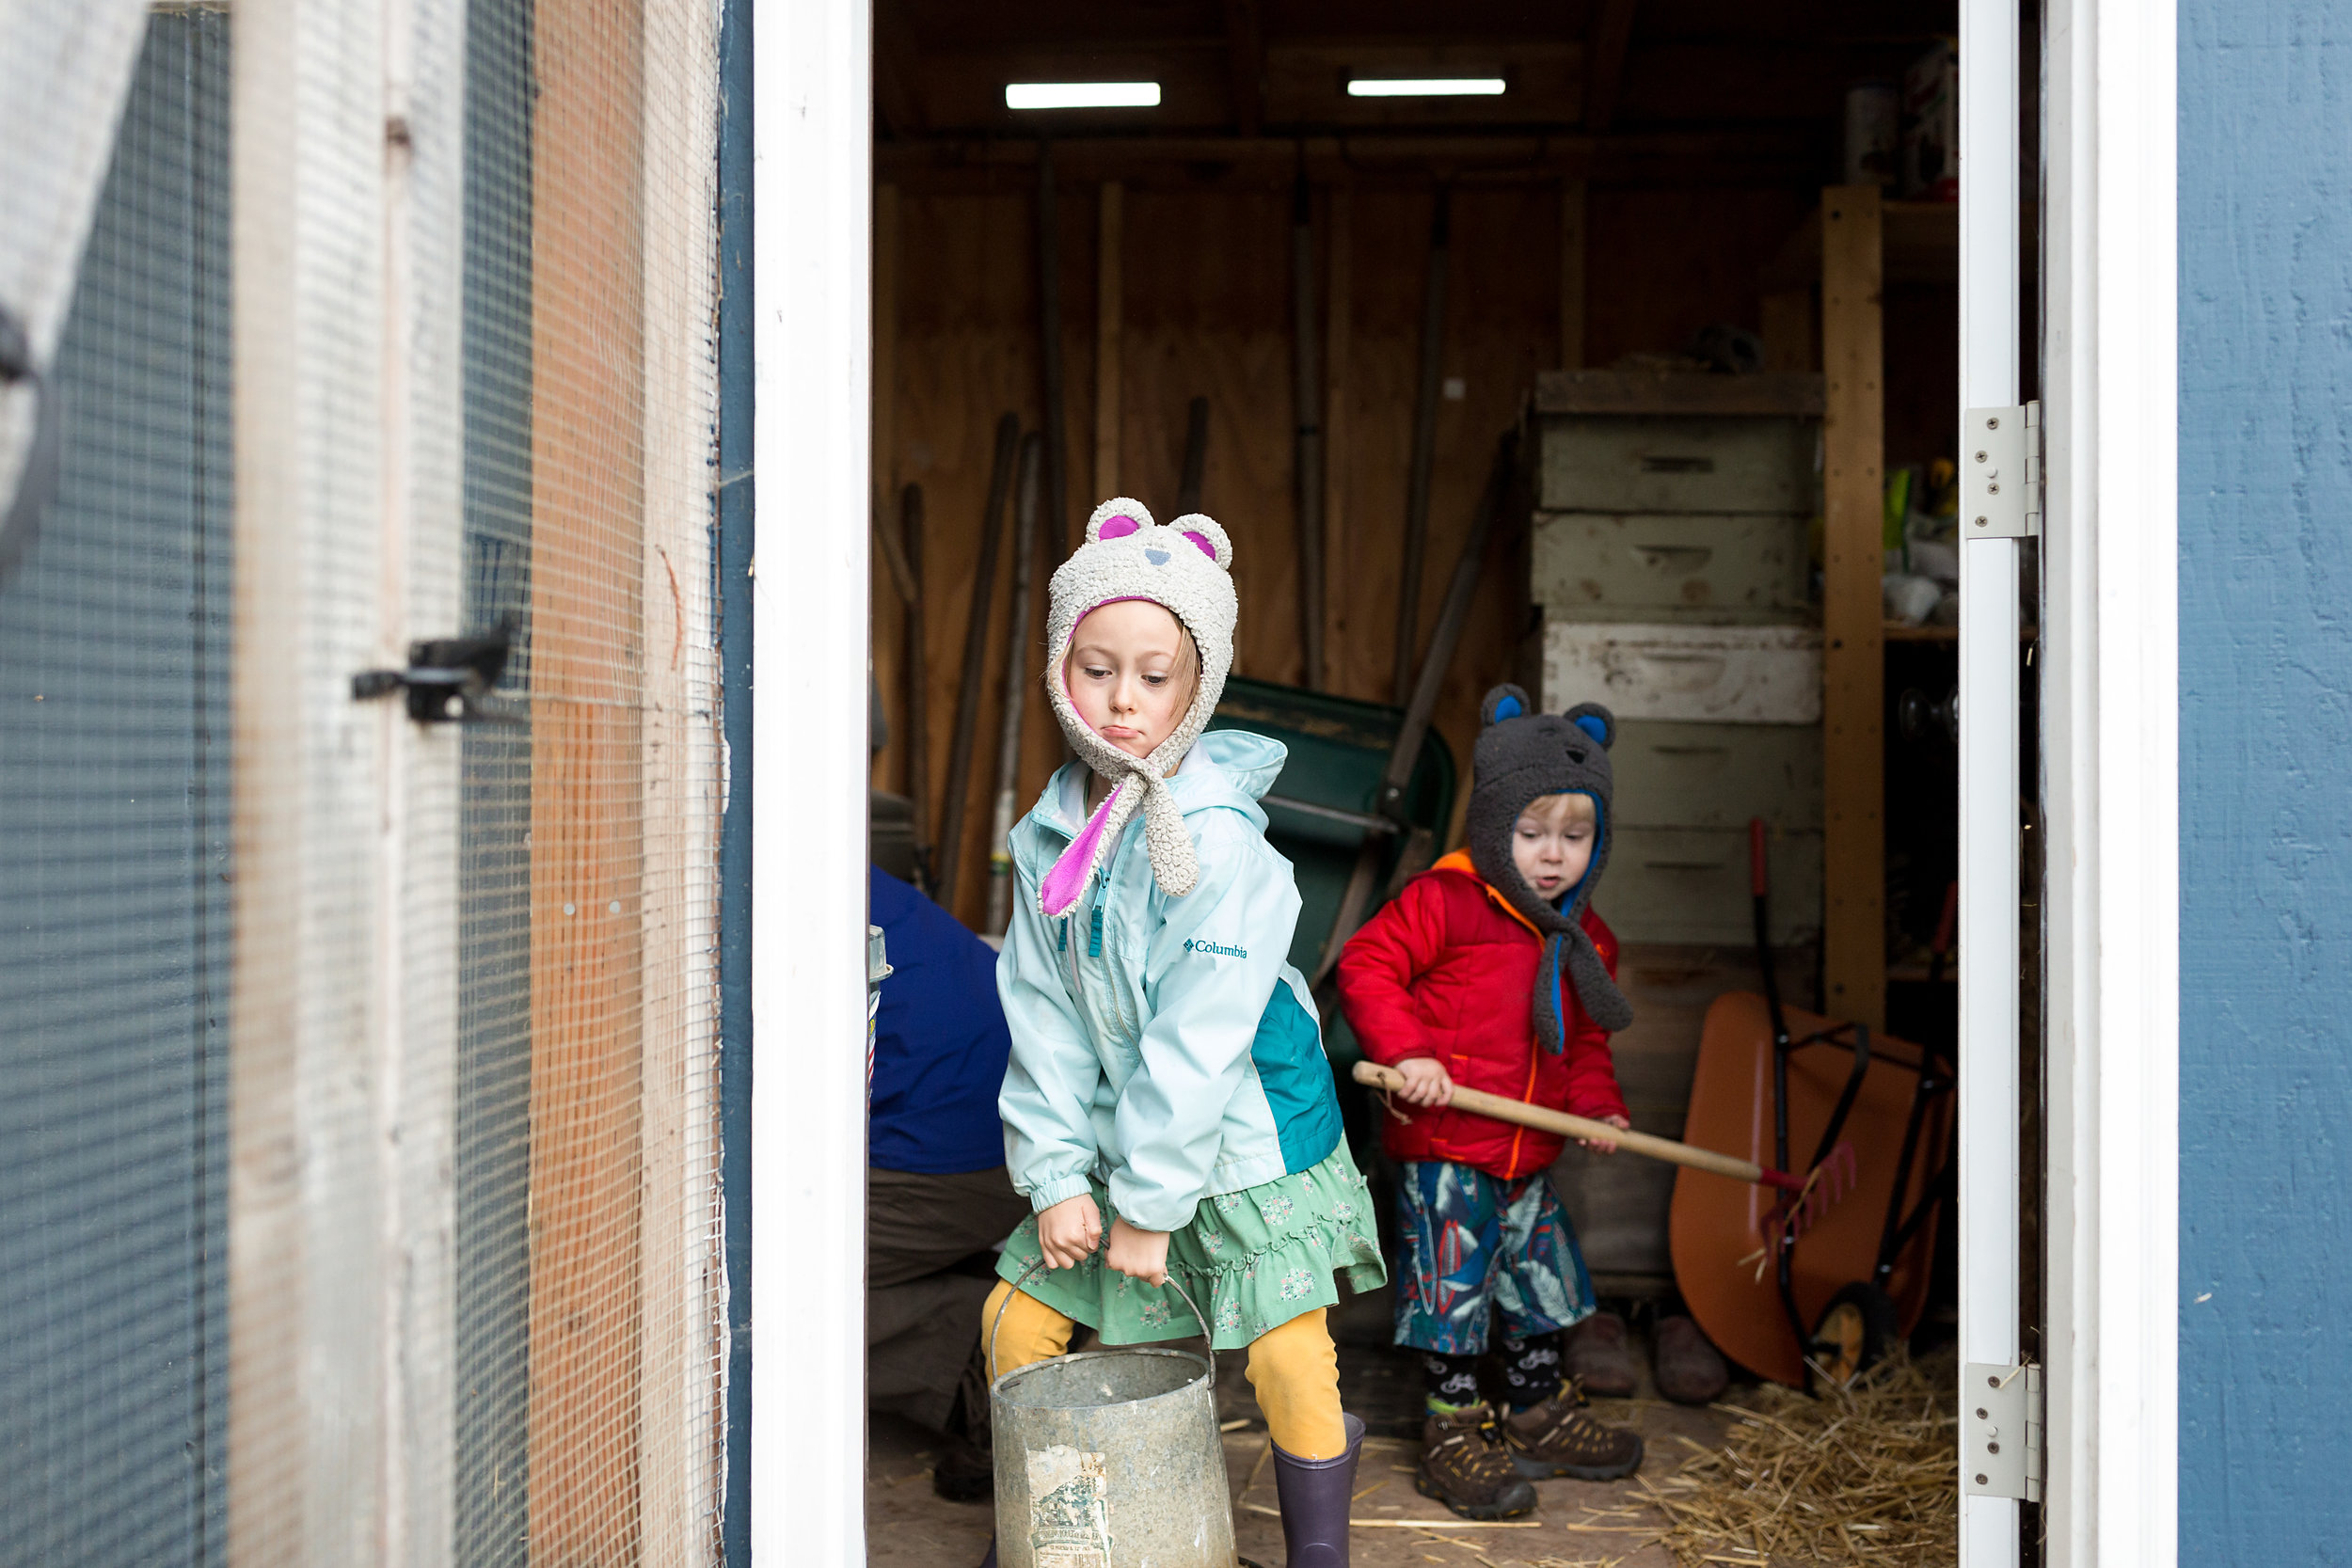 Girl hefts bucket from shed while brother rakes straw and looks on